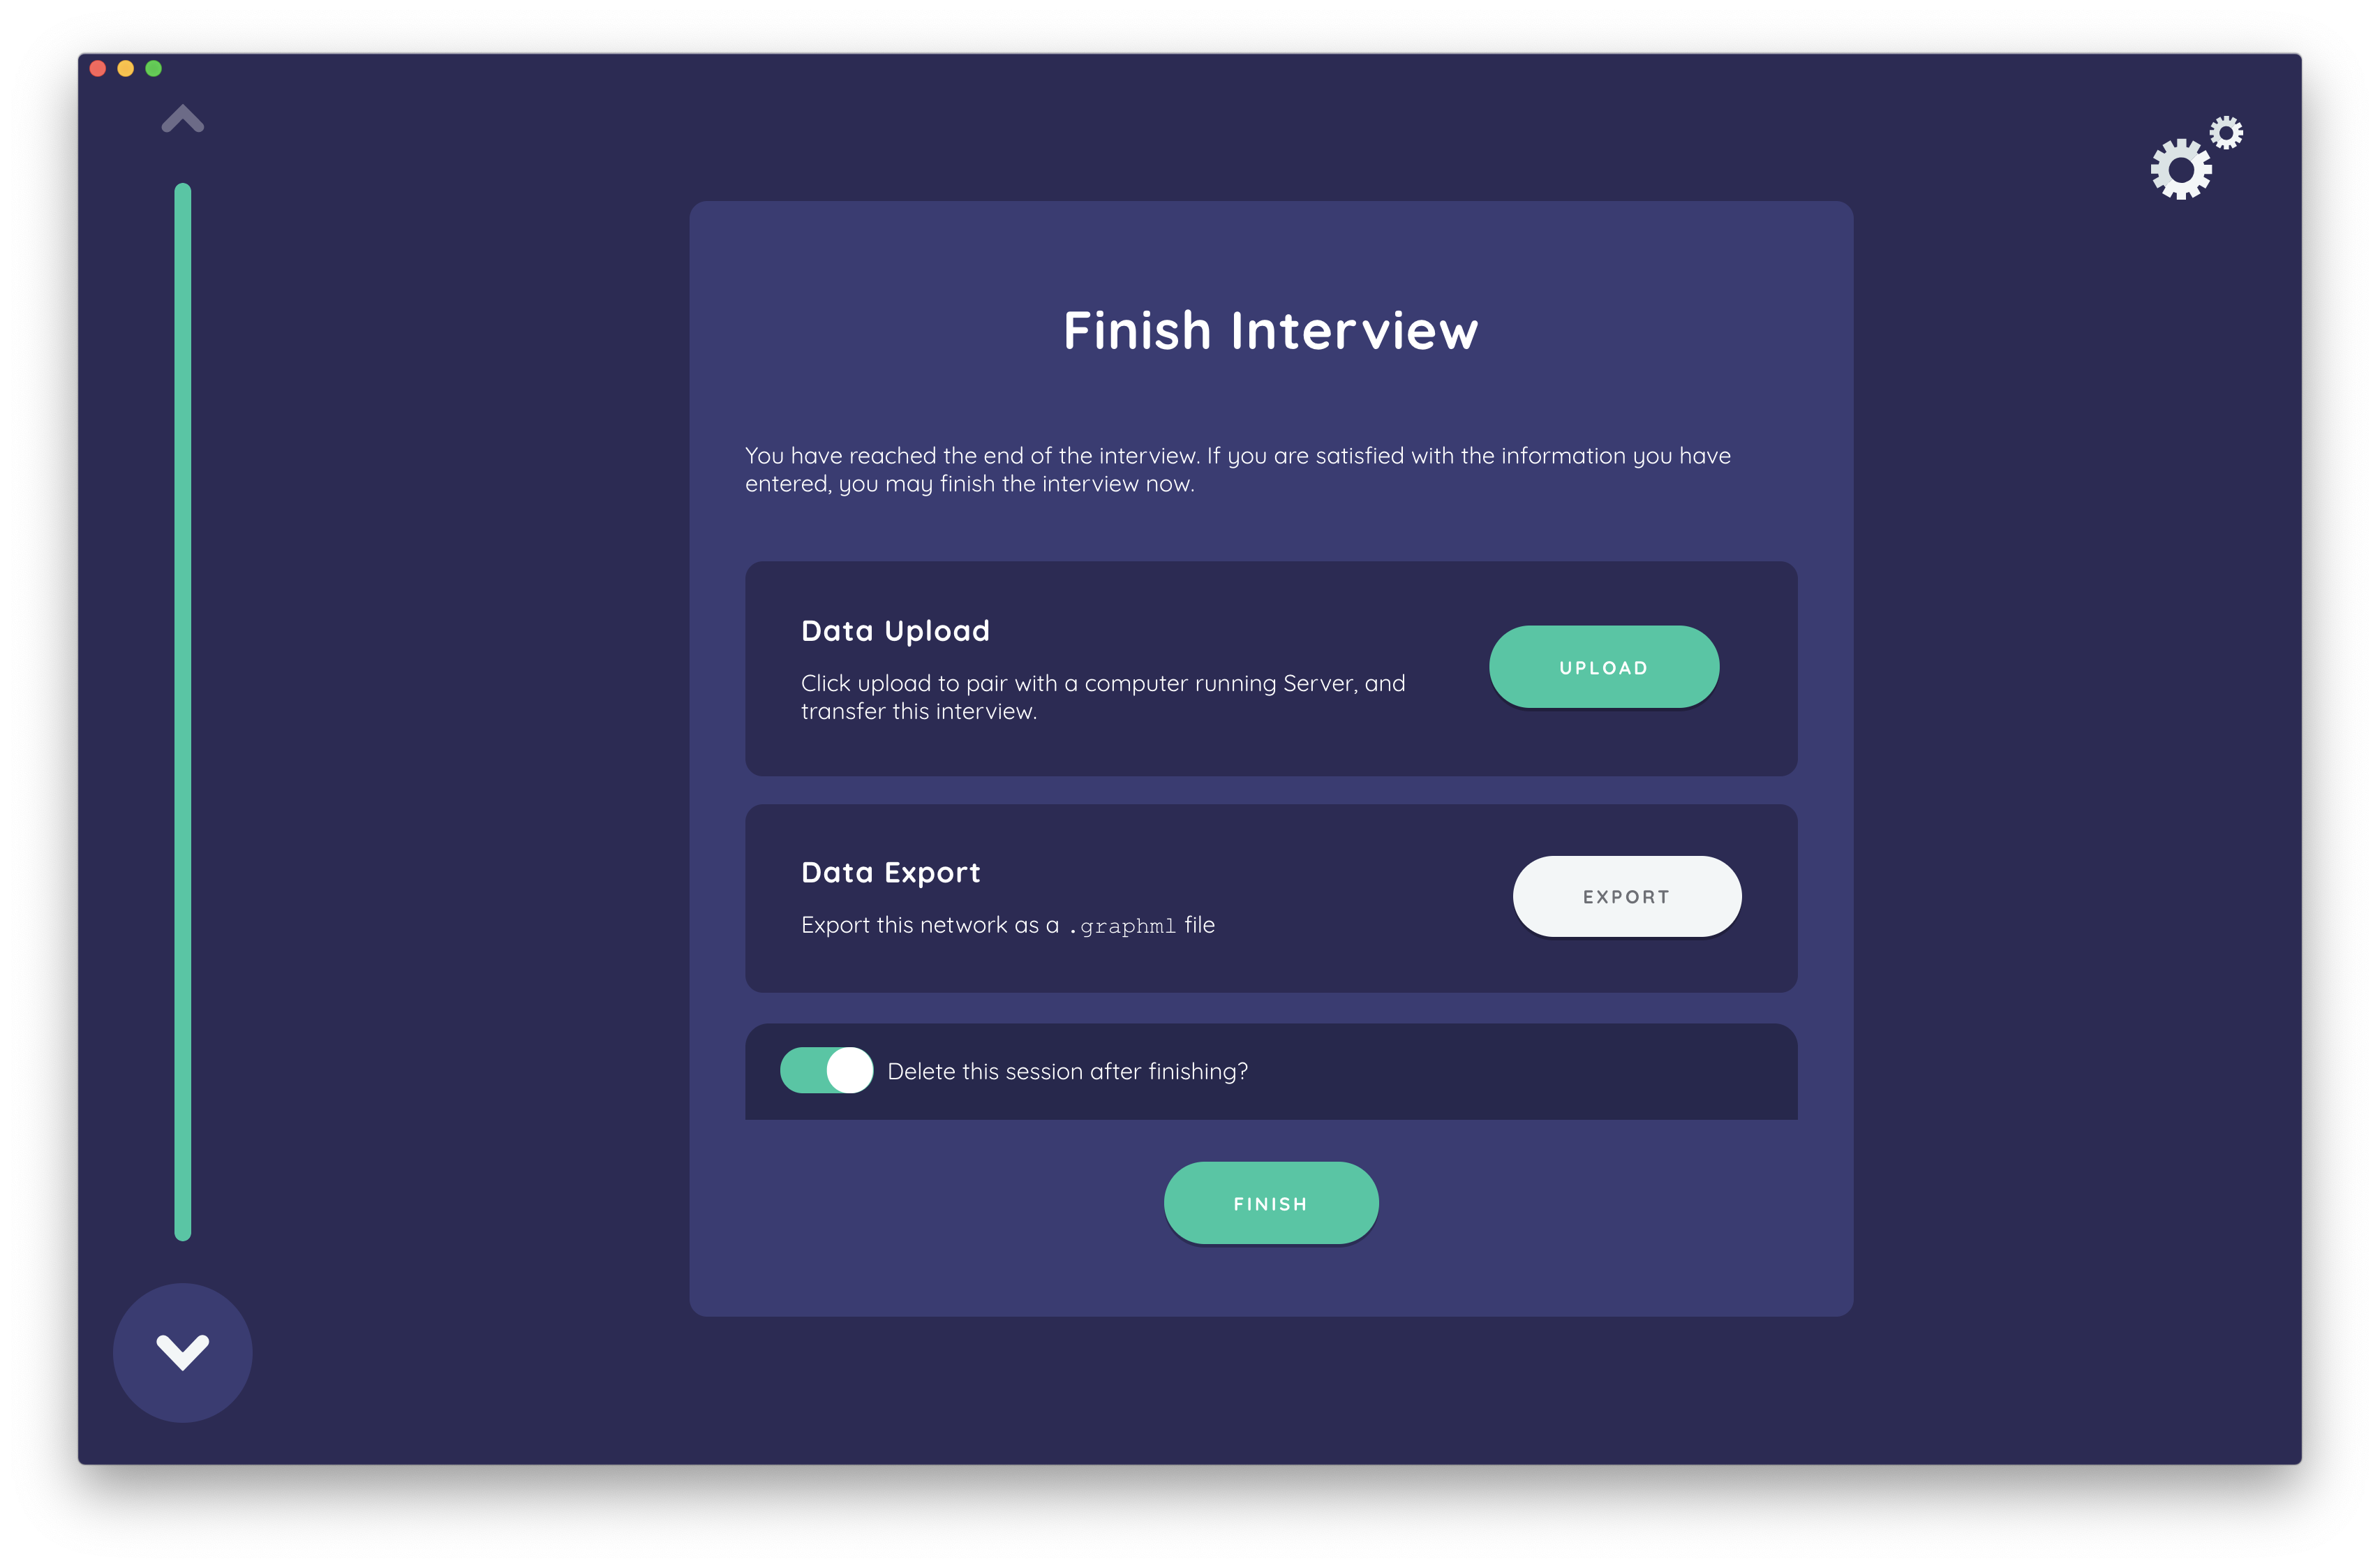 The finish interview screen